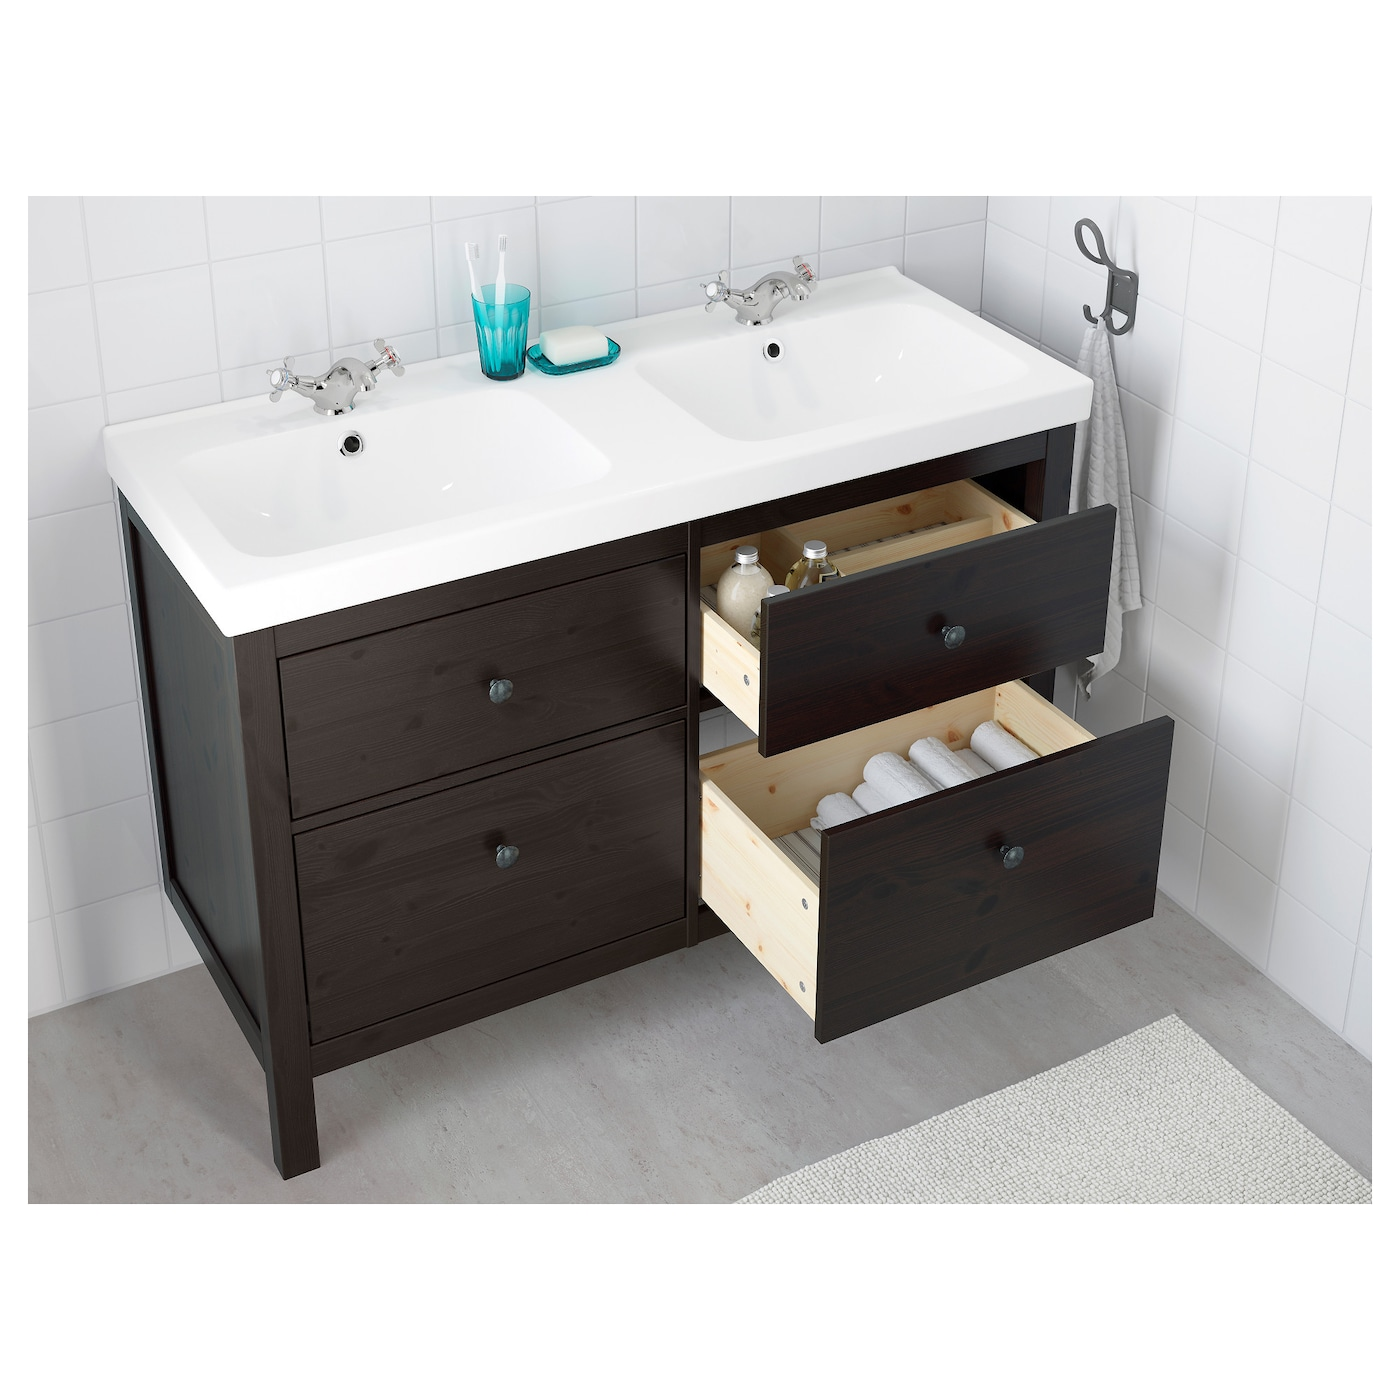 odensvik hemnes meuble lavabo 4tir teinture noir brun 120x49x89 cm ikea. Black Bedroom Furniture Sets. Home Design Ideas